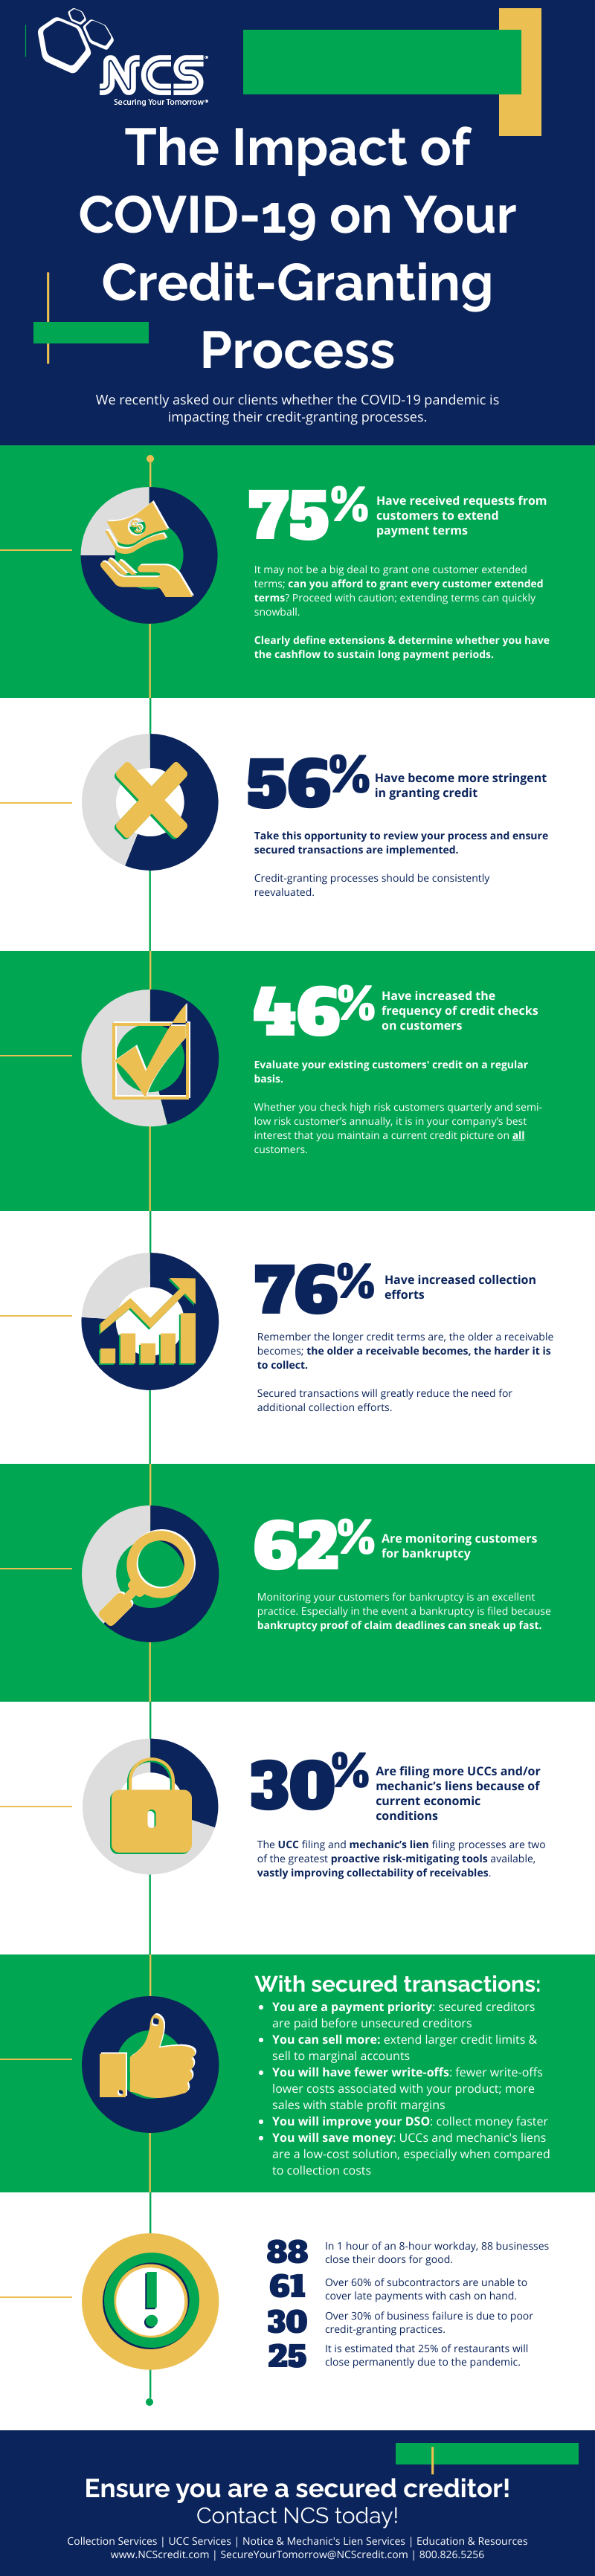 Infographic - The Impact of COVID19 on Your Credit-Granting Process